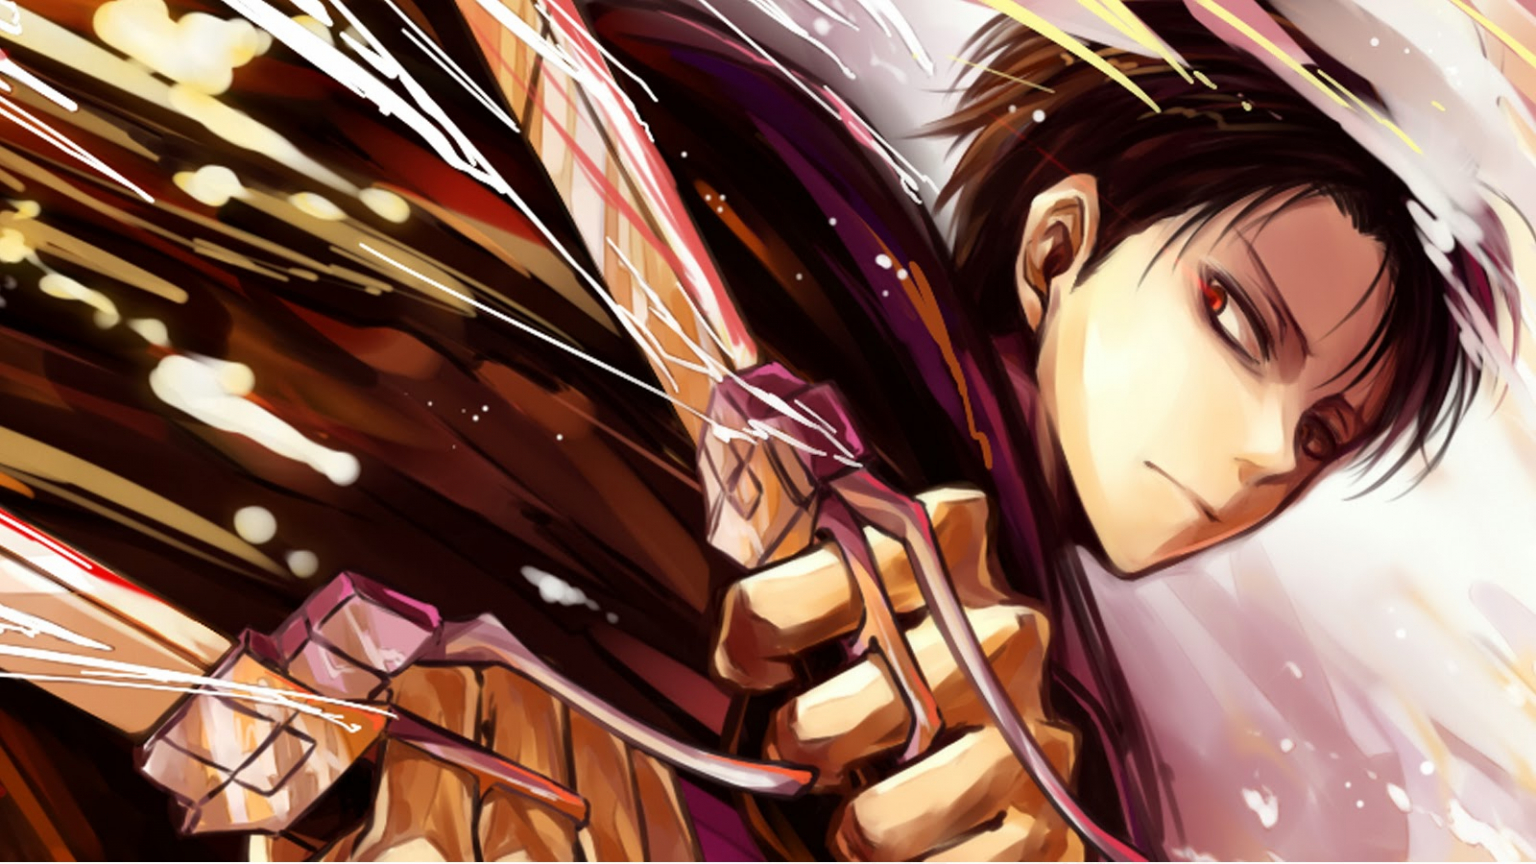 Free Download Levi Anime Attack On Titan Shingeki No Kyojin 1600x900 9l 1600x900 For Your Desktop Mobile Tablet Explore 50 Cool Attack On Titan Wallpapers Attack On Titans Wallpaper